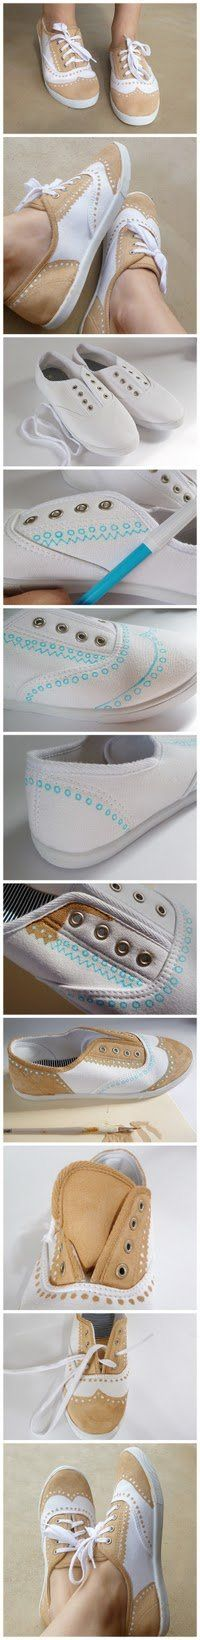 FOODS EATS / DIY saddle shoes! - MikeLike